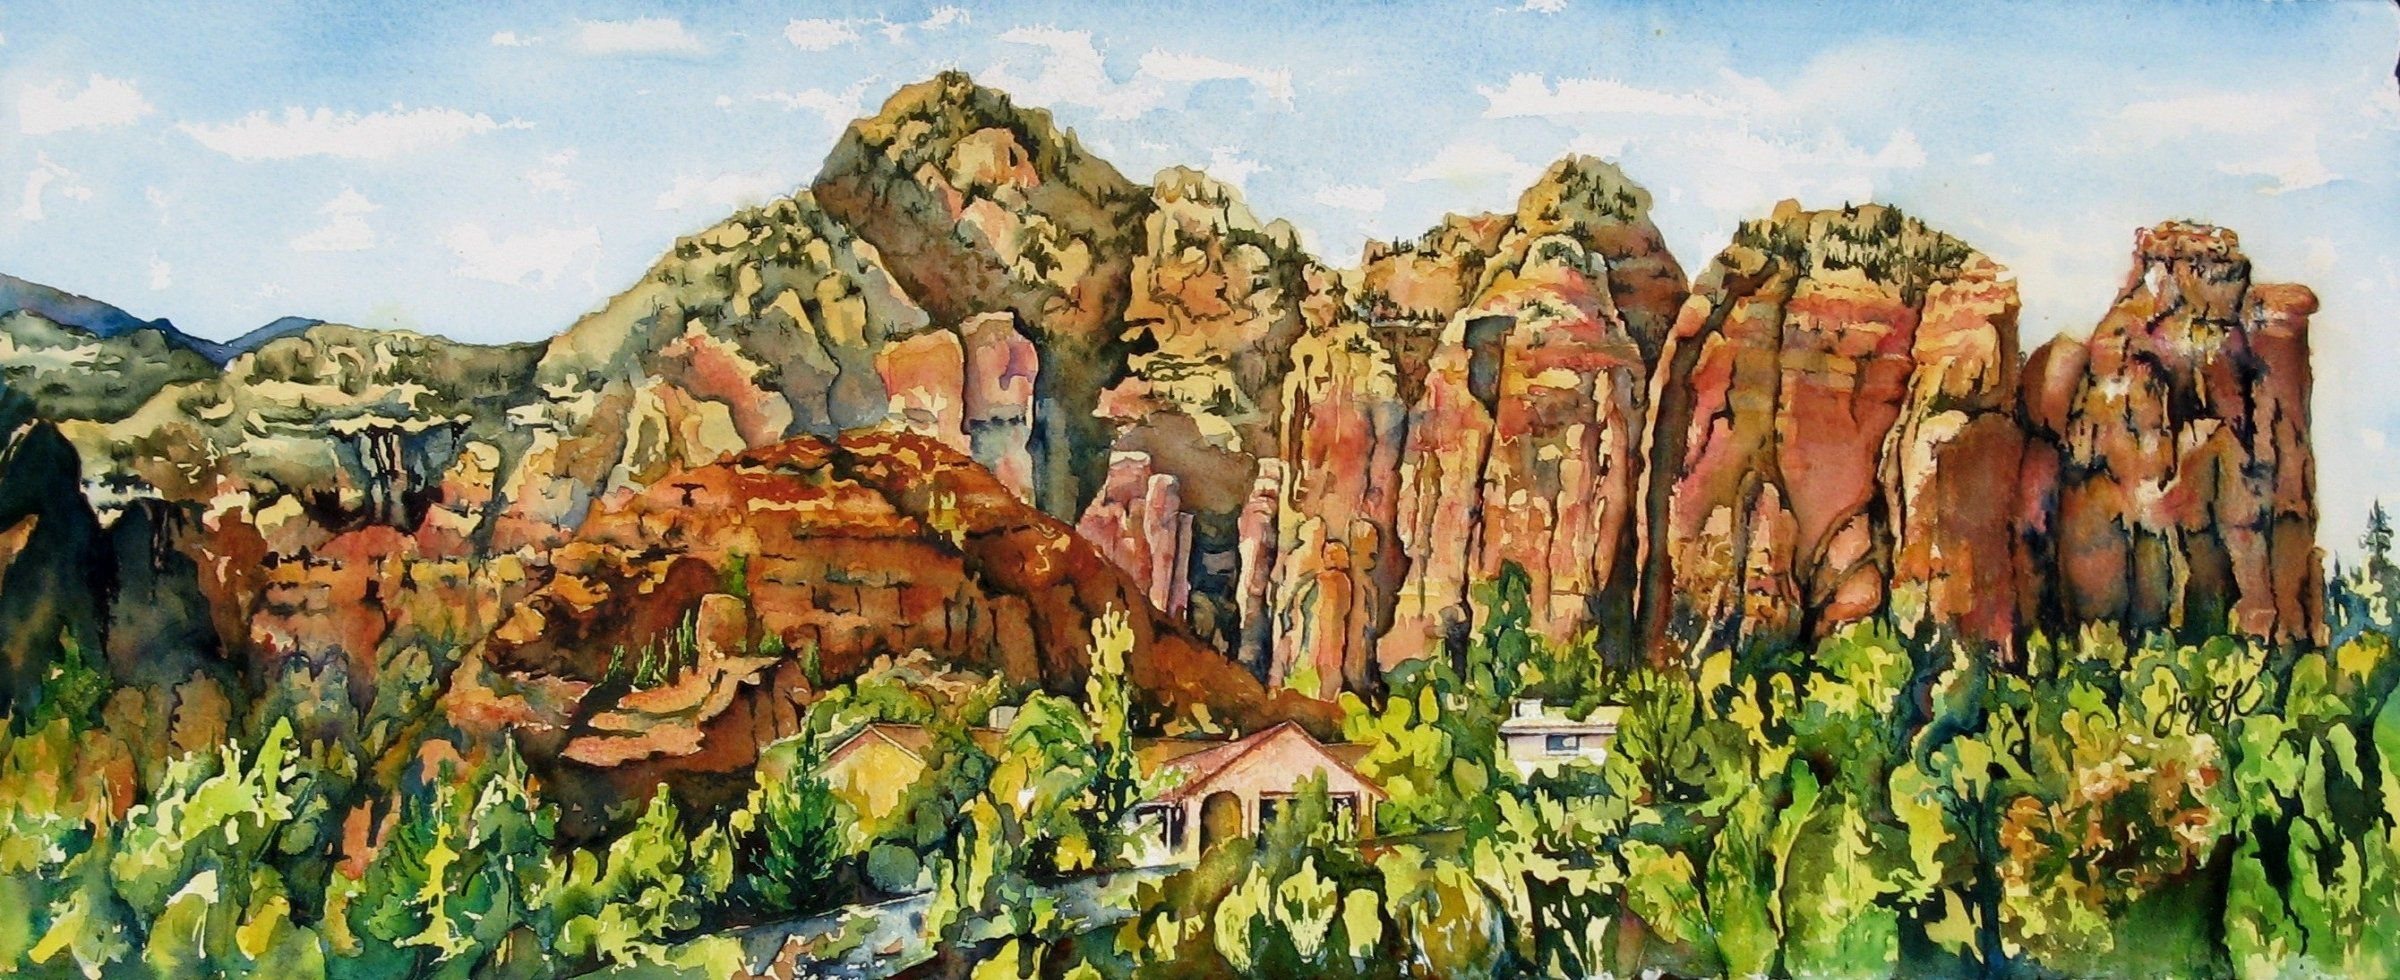 Coffee Pot Rock Sedona, Arizona Nature, Rock, Sedona arizona